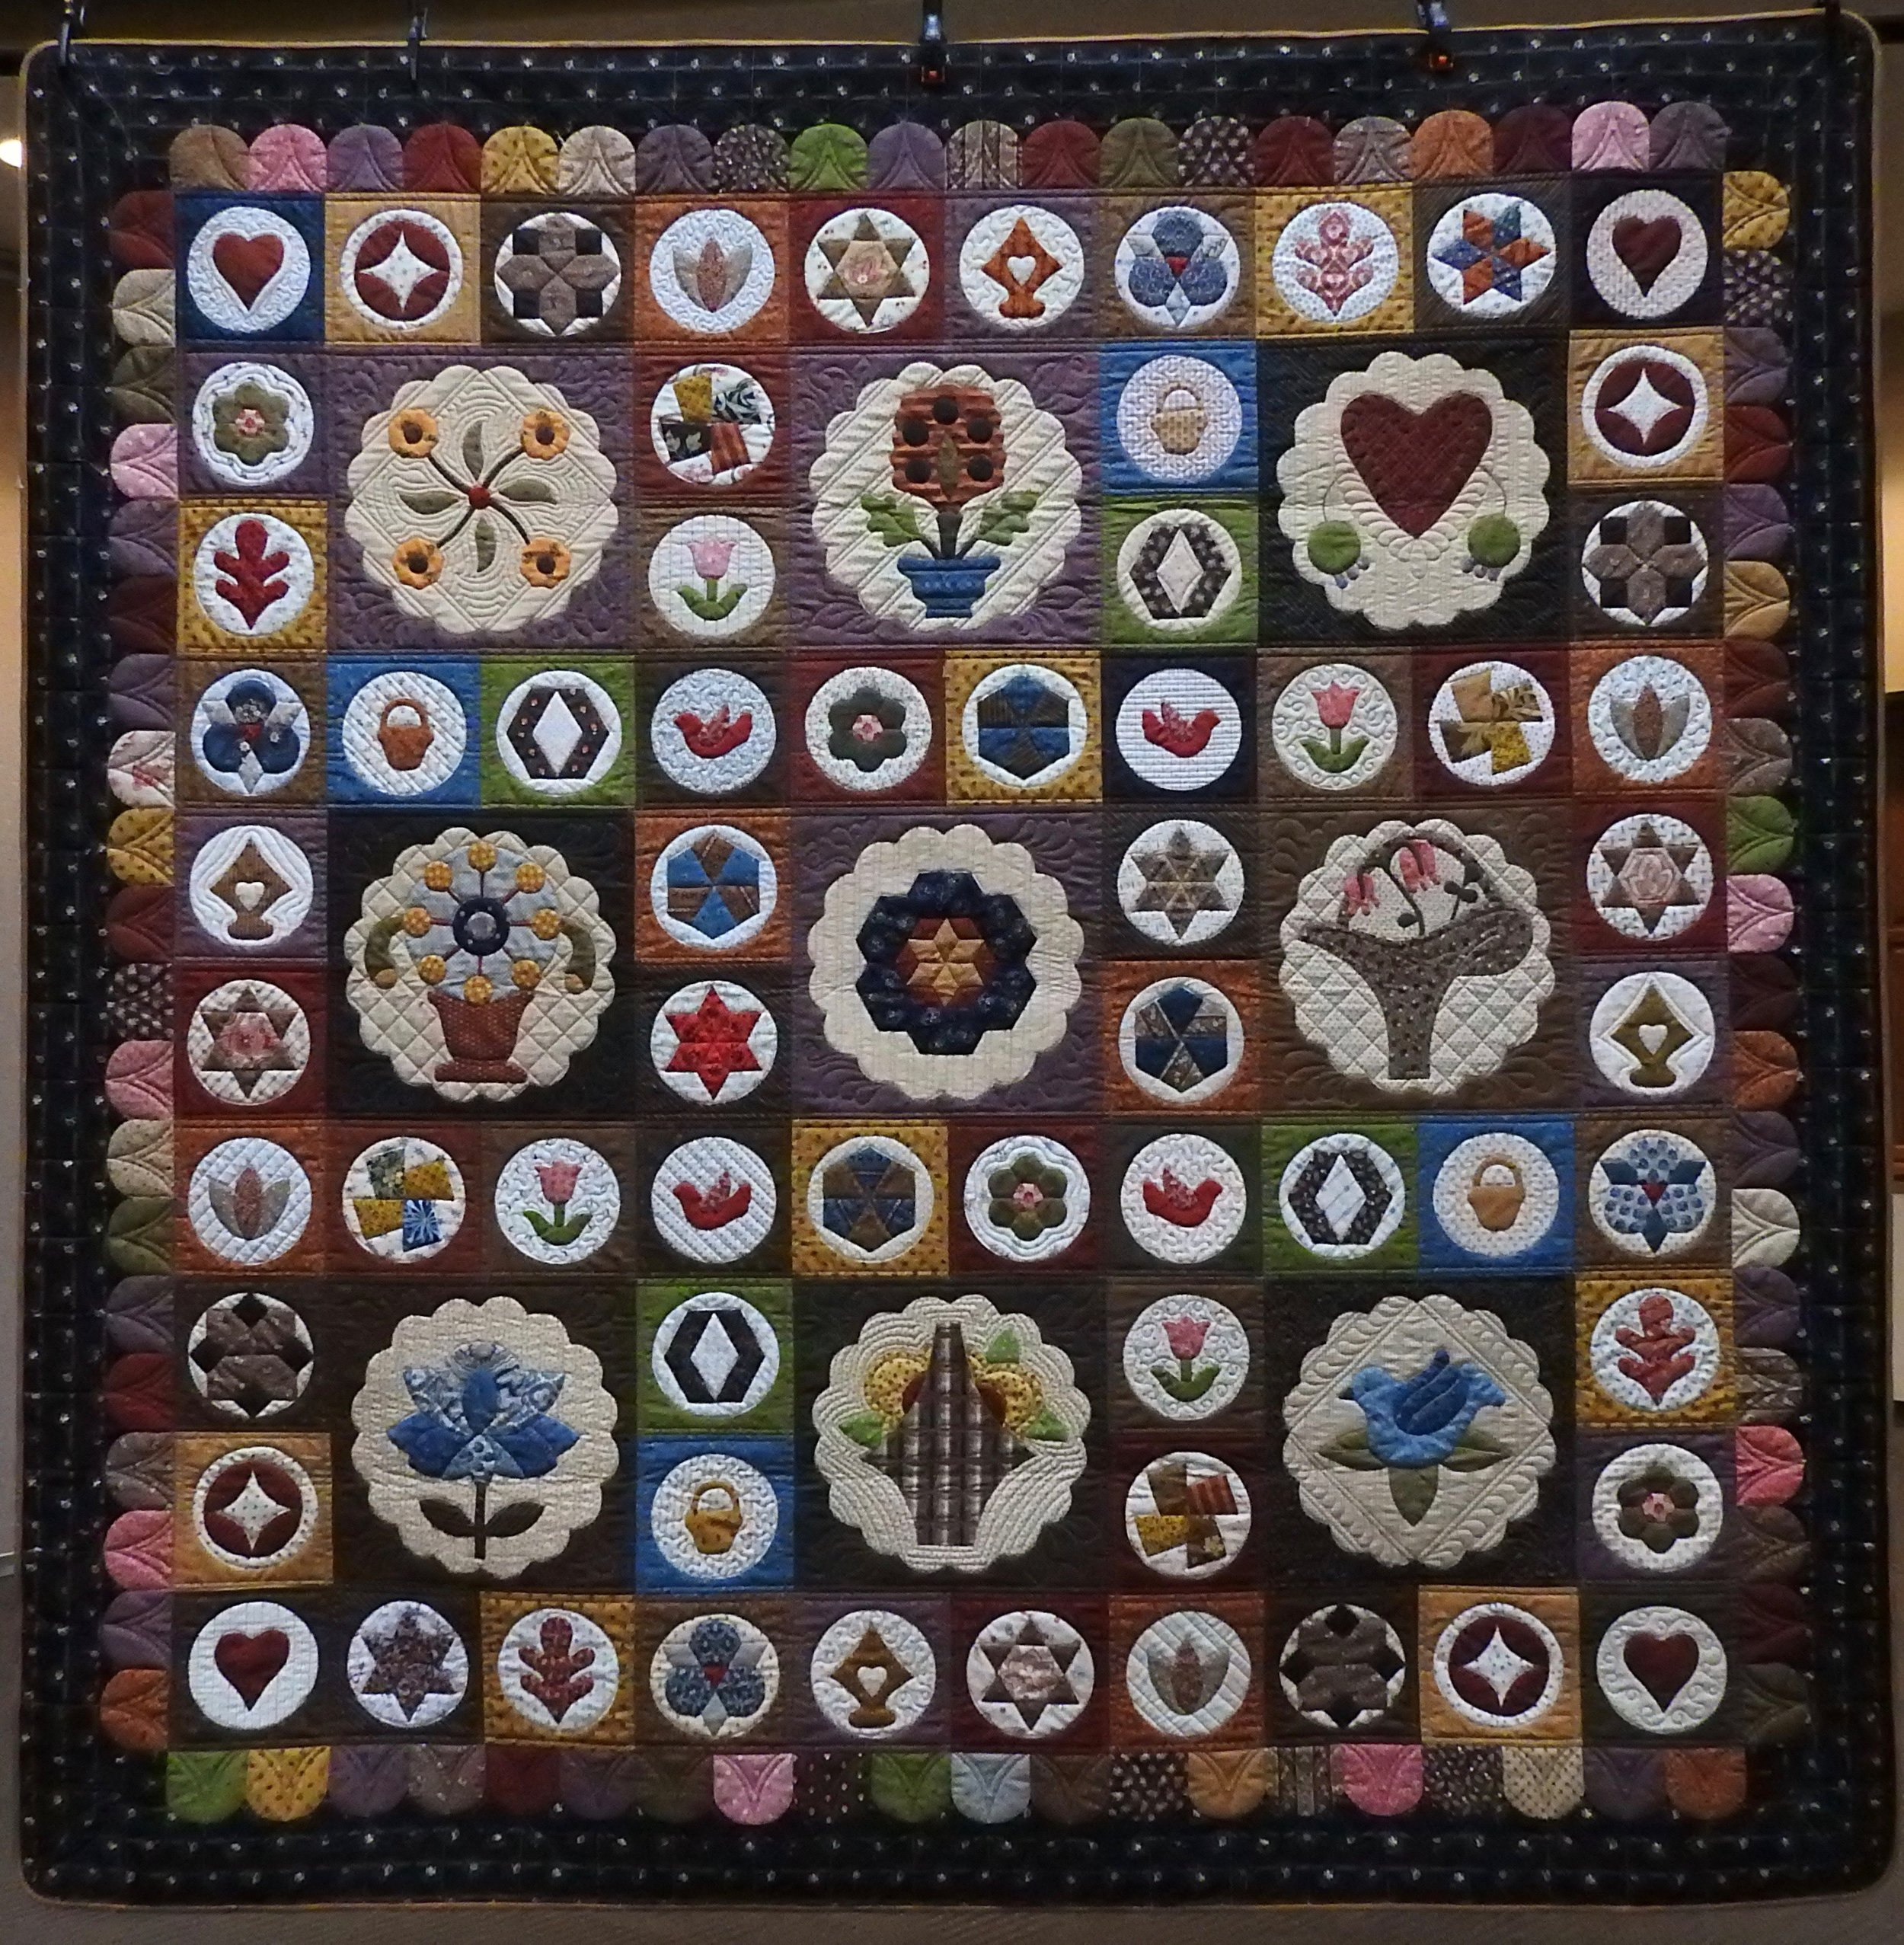 Antique Quilt, Pieced & Appliquéd of New Fabrics by Edith Shanholt, pattern adapted from Antique Quilt by Sue Daley, Custom Machine Quilted, donated by Edith Shanholt, 72 x 72""